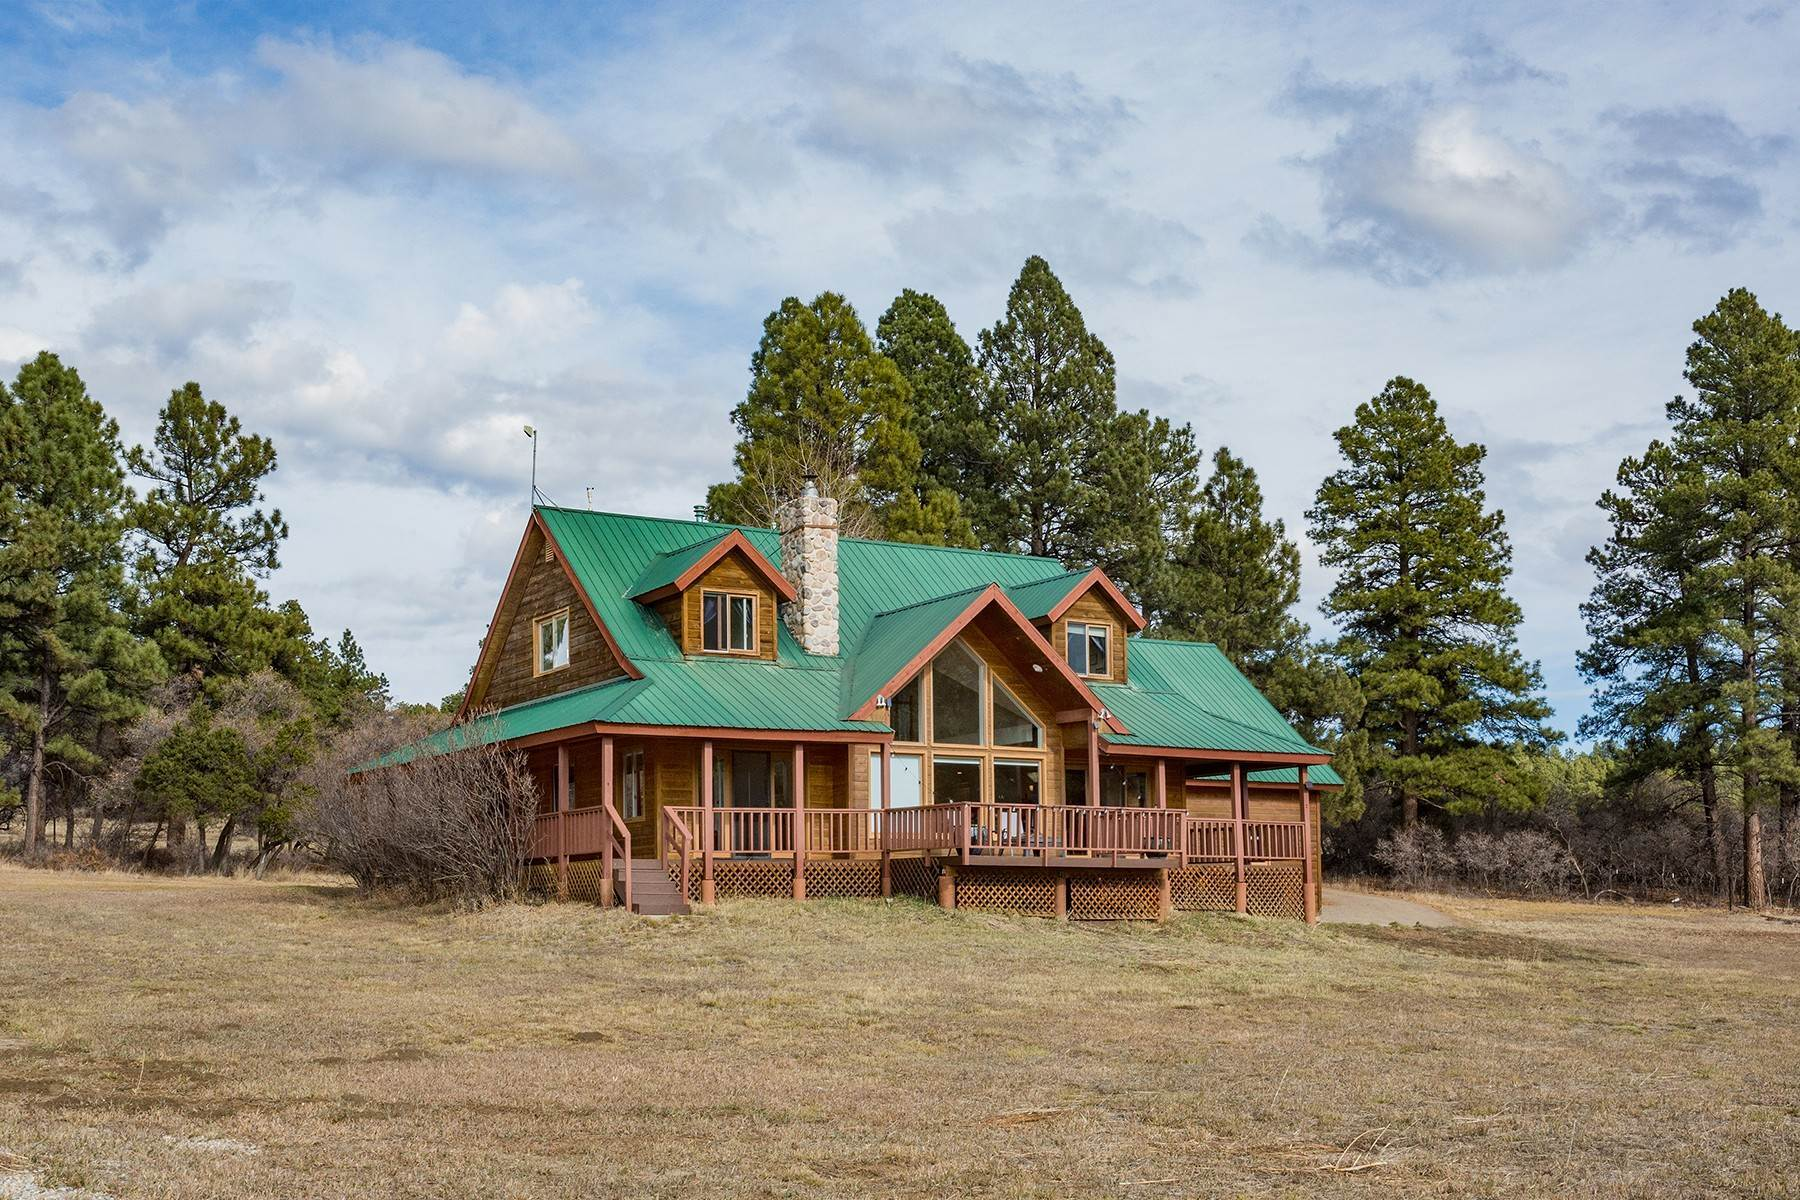 Single Family Homes for Sale at 433 Long Hollow Circle Durango, Colorado 81301 United States